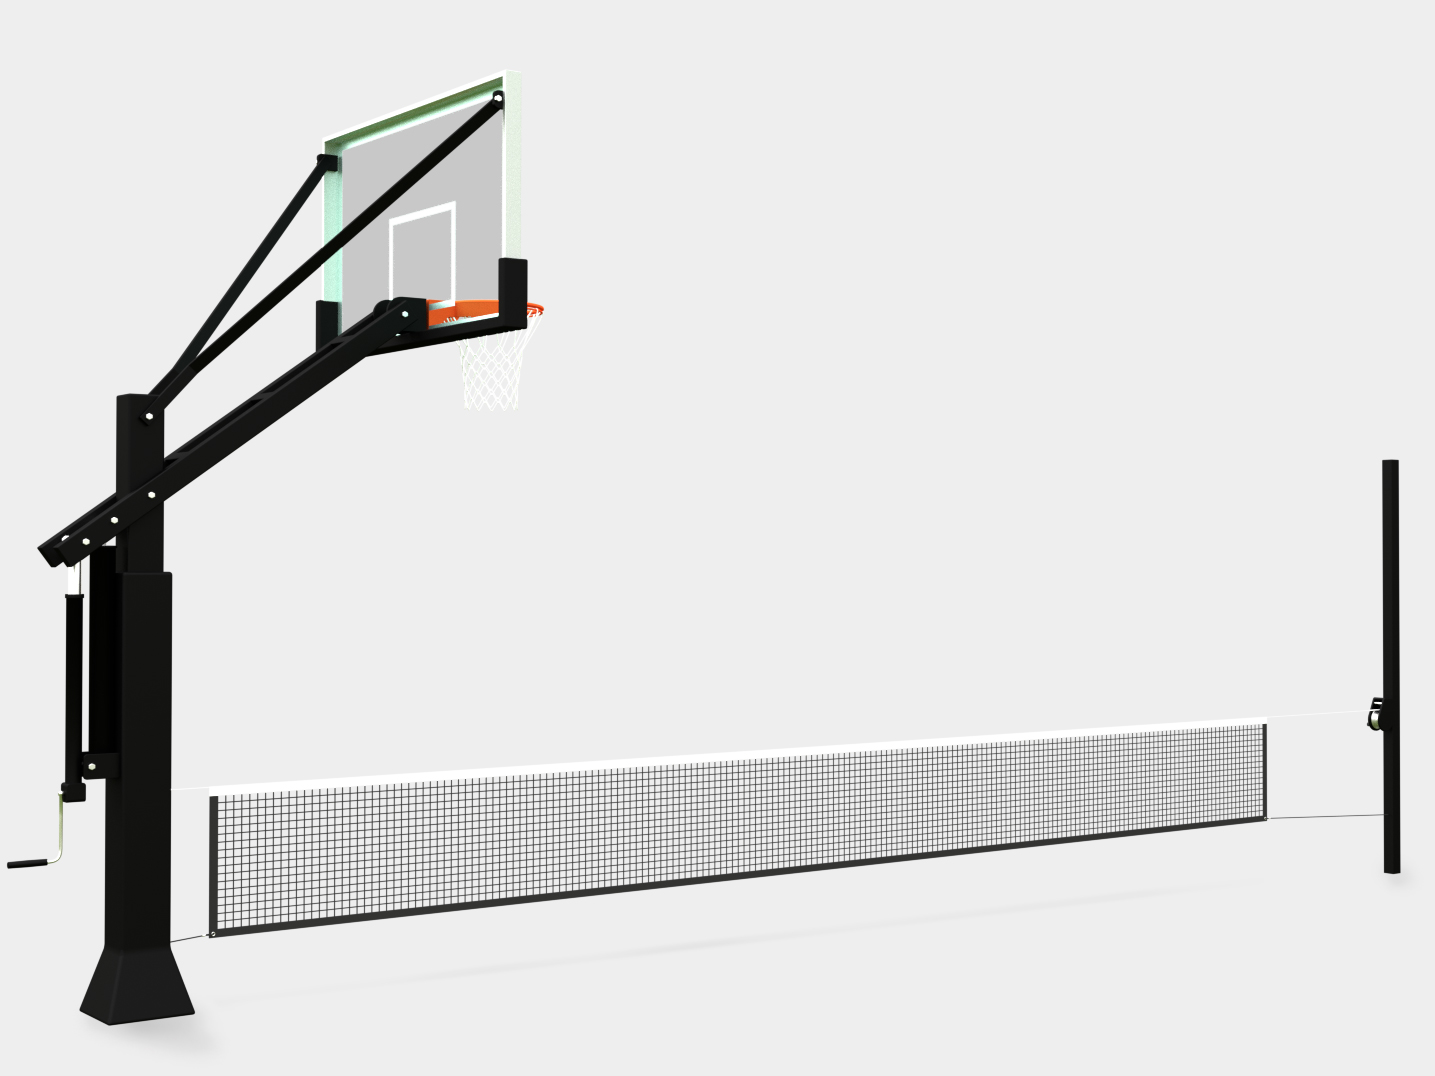 Half-Court Multi-Game Net System